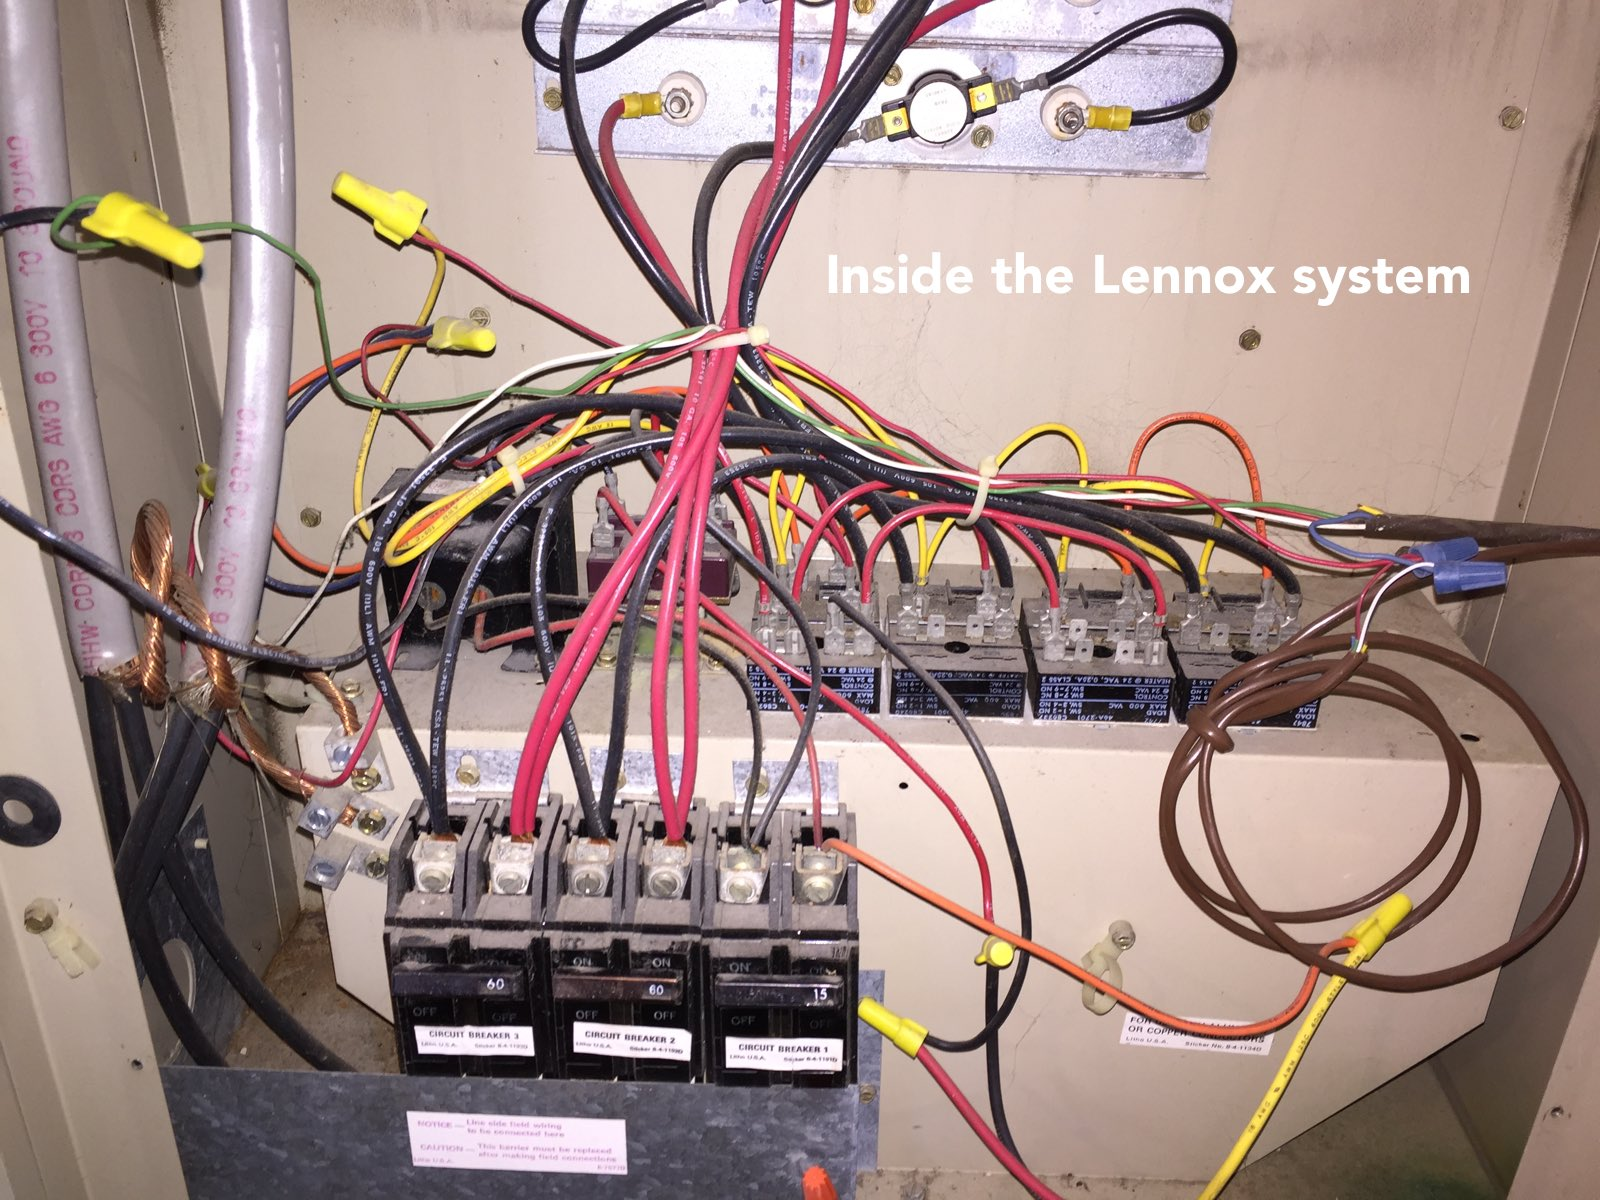 hight resolution of how to add a c wire to an old lennox system home improvement stack blower motor wiring diagram lennox furnace with honeywell wiring diagram